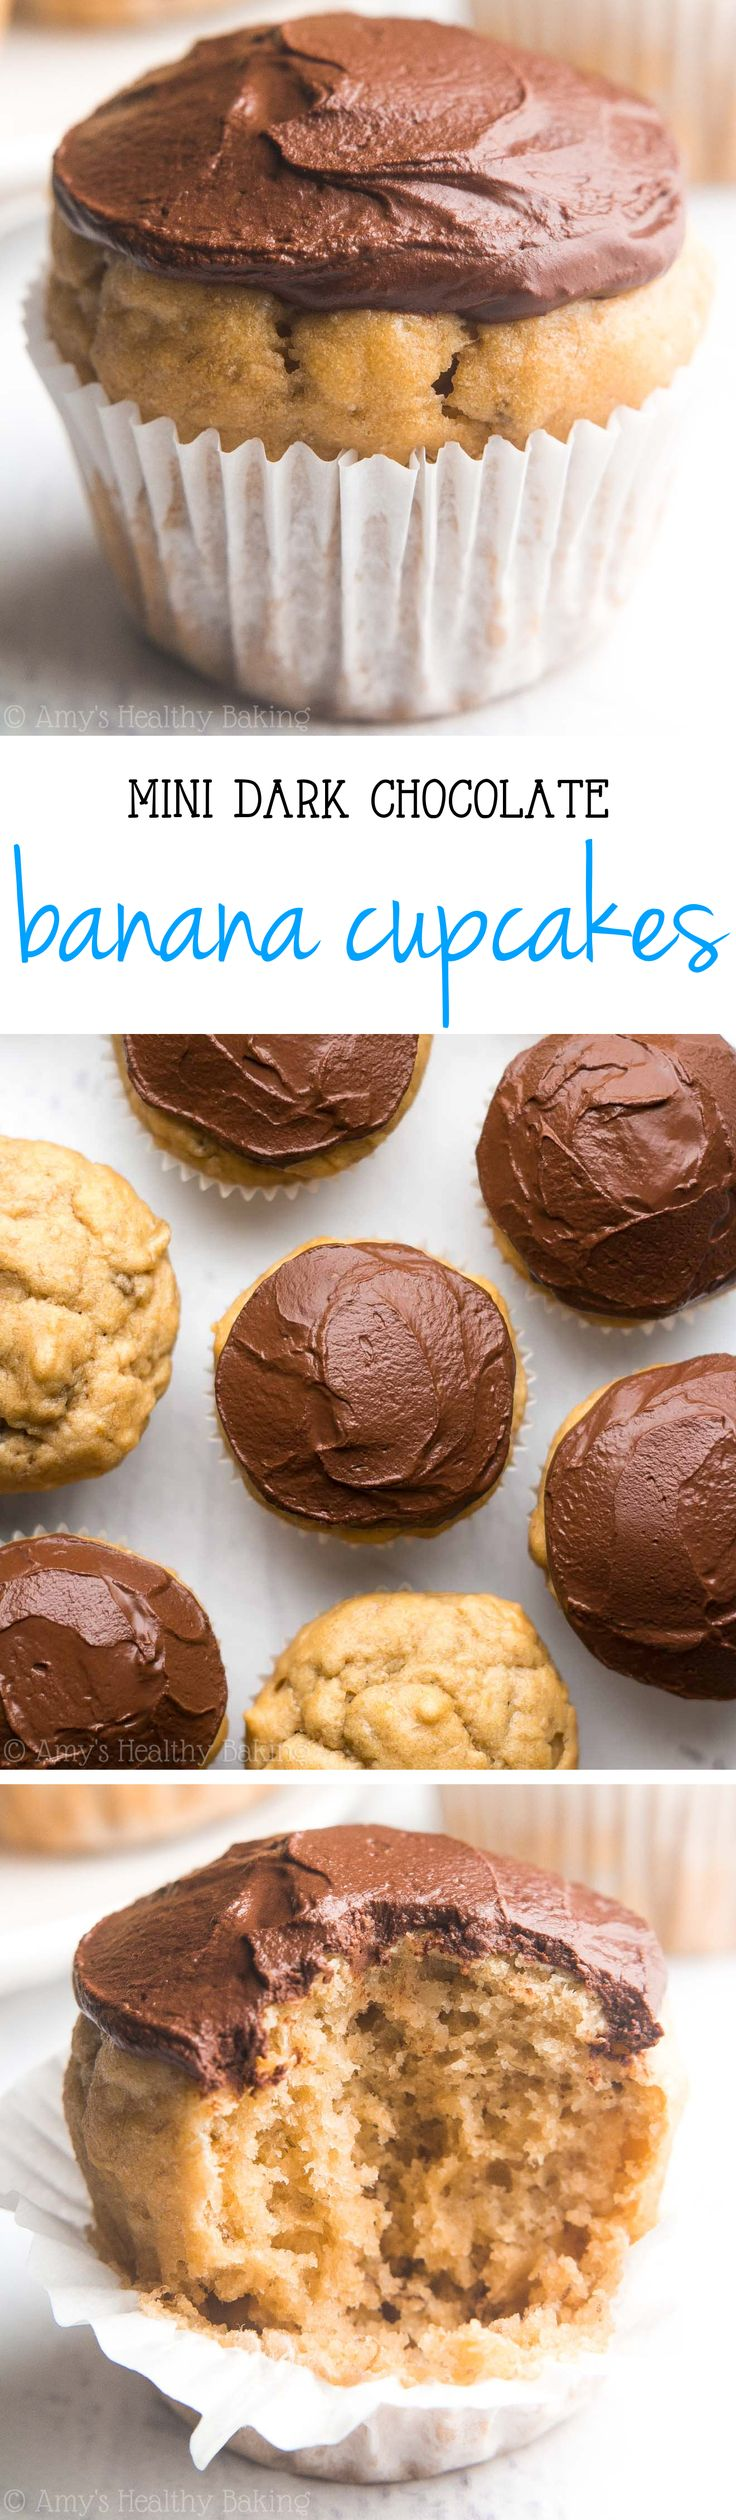 Mini Dark Chocolate Banana Cupcakes - So easy, so tender, so good! Even better, they're 100% healthy and just 43 calories!